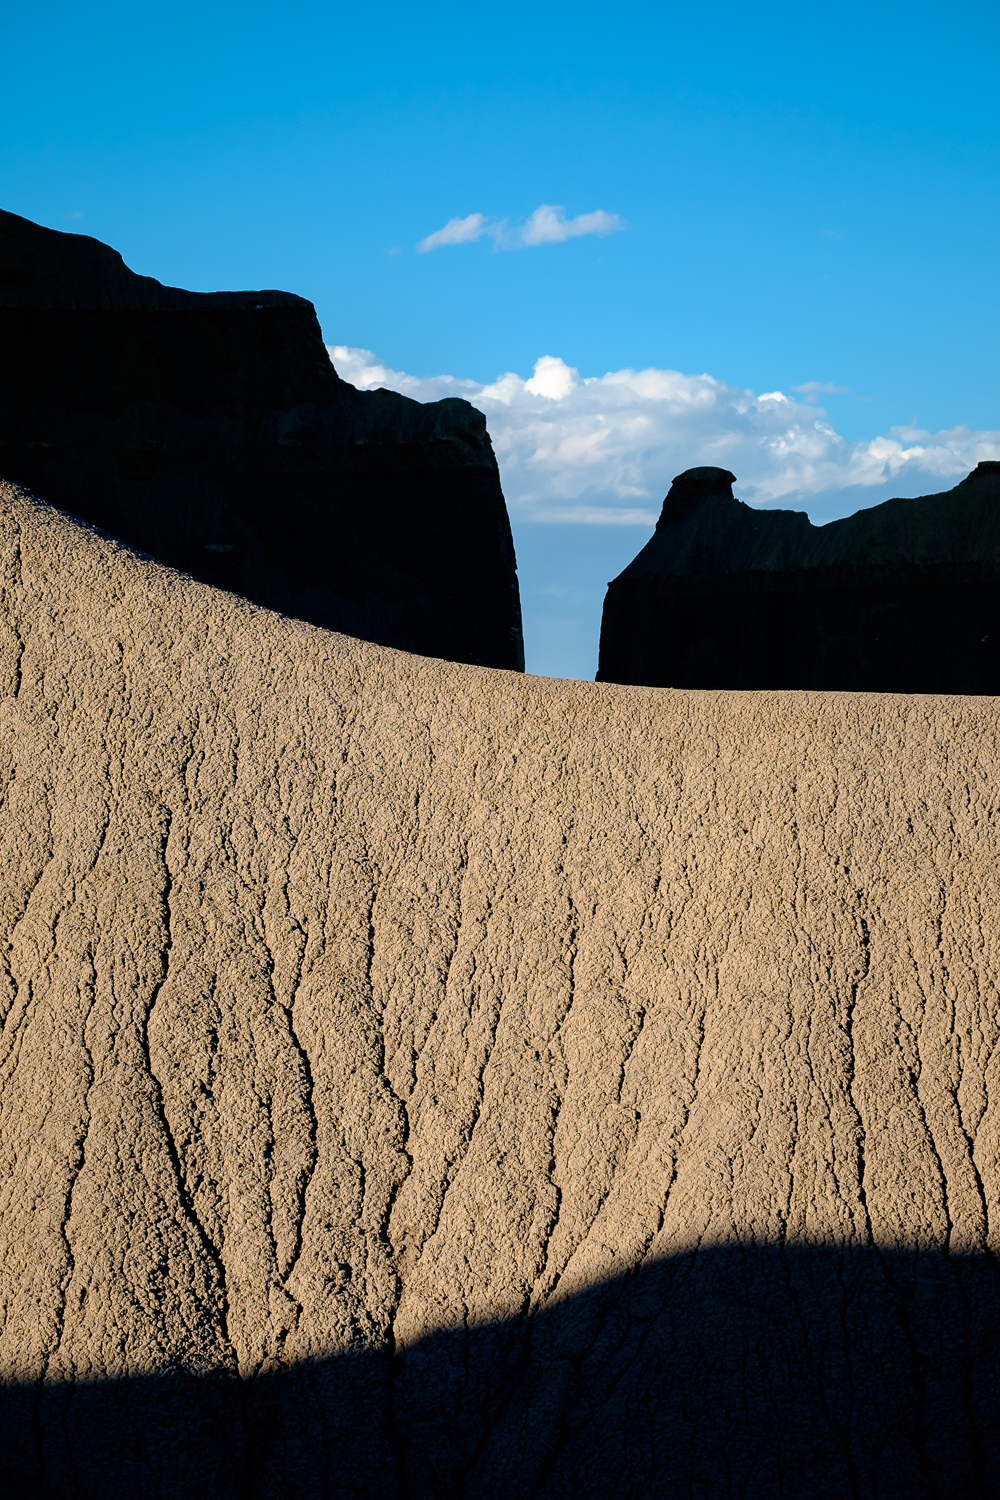 Sunlight and shadows play on the eroded forms of the Cainville Badlands, in Utah.